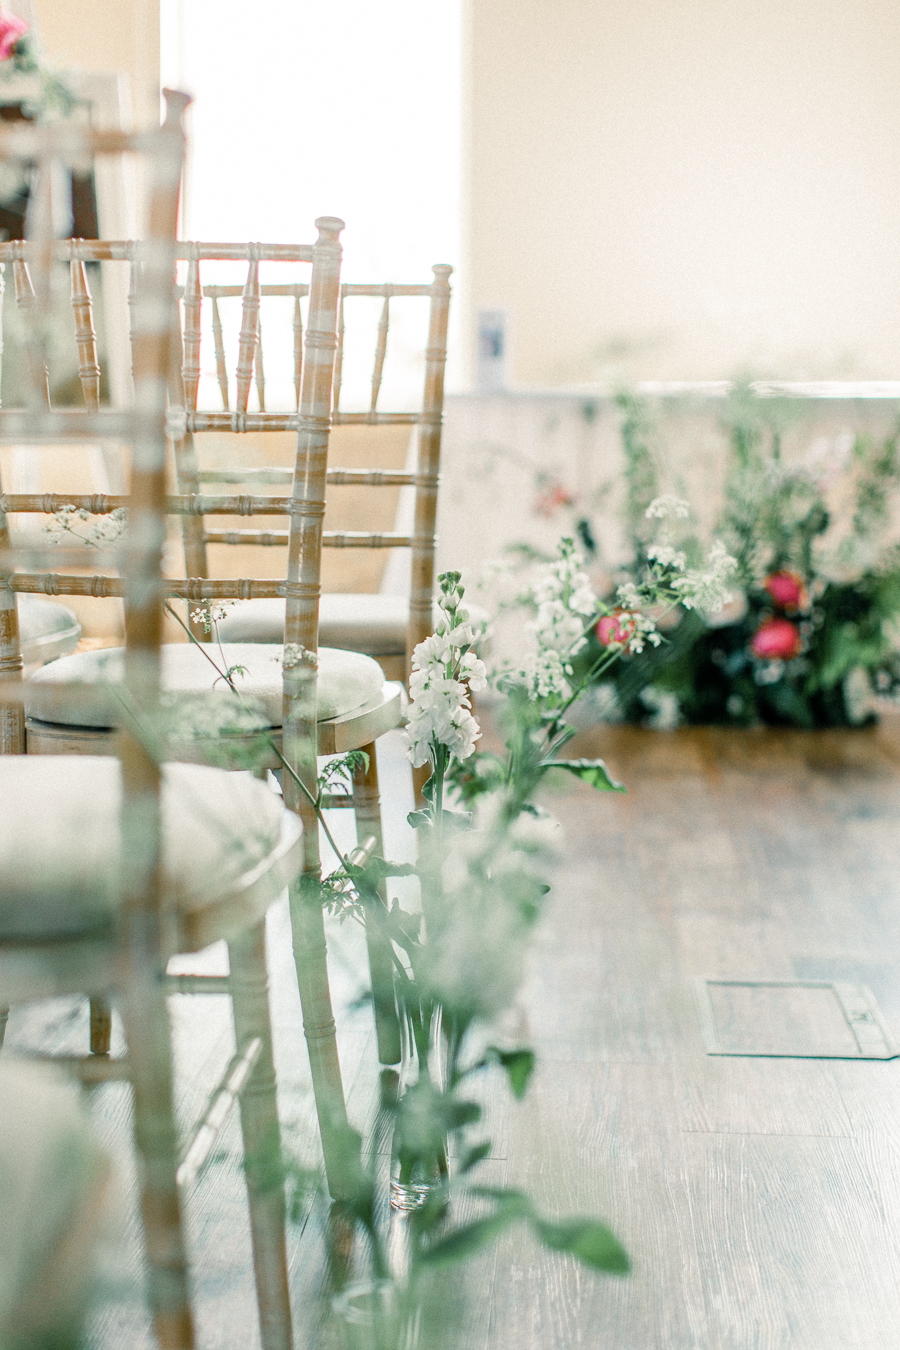 Jordans Courtyard rustic wedding styling ideas with images by Liz Baker Photography (2)